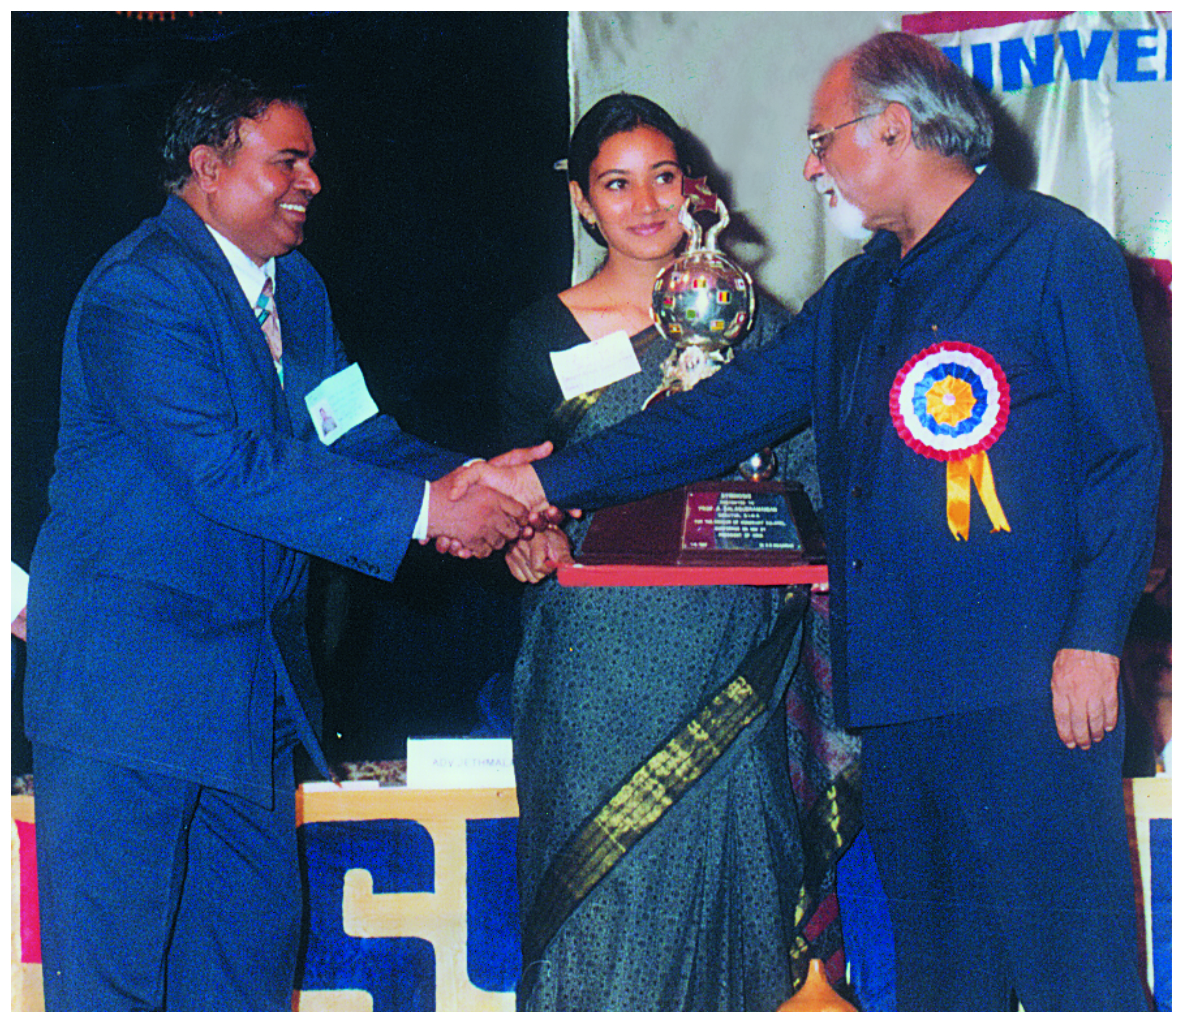 Dr (col) A Balasubramanian gets awarded by Mr I K Gujaral